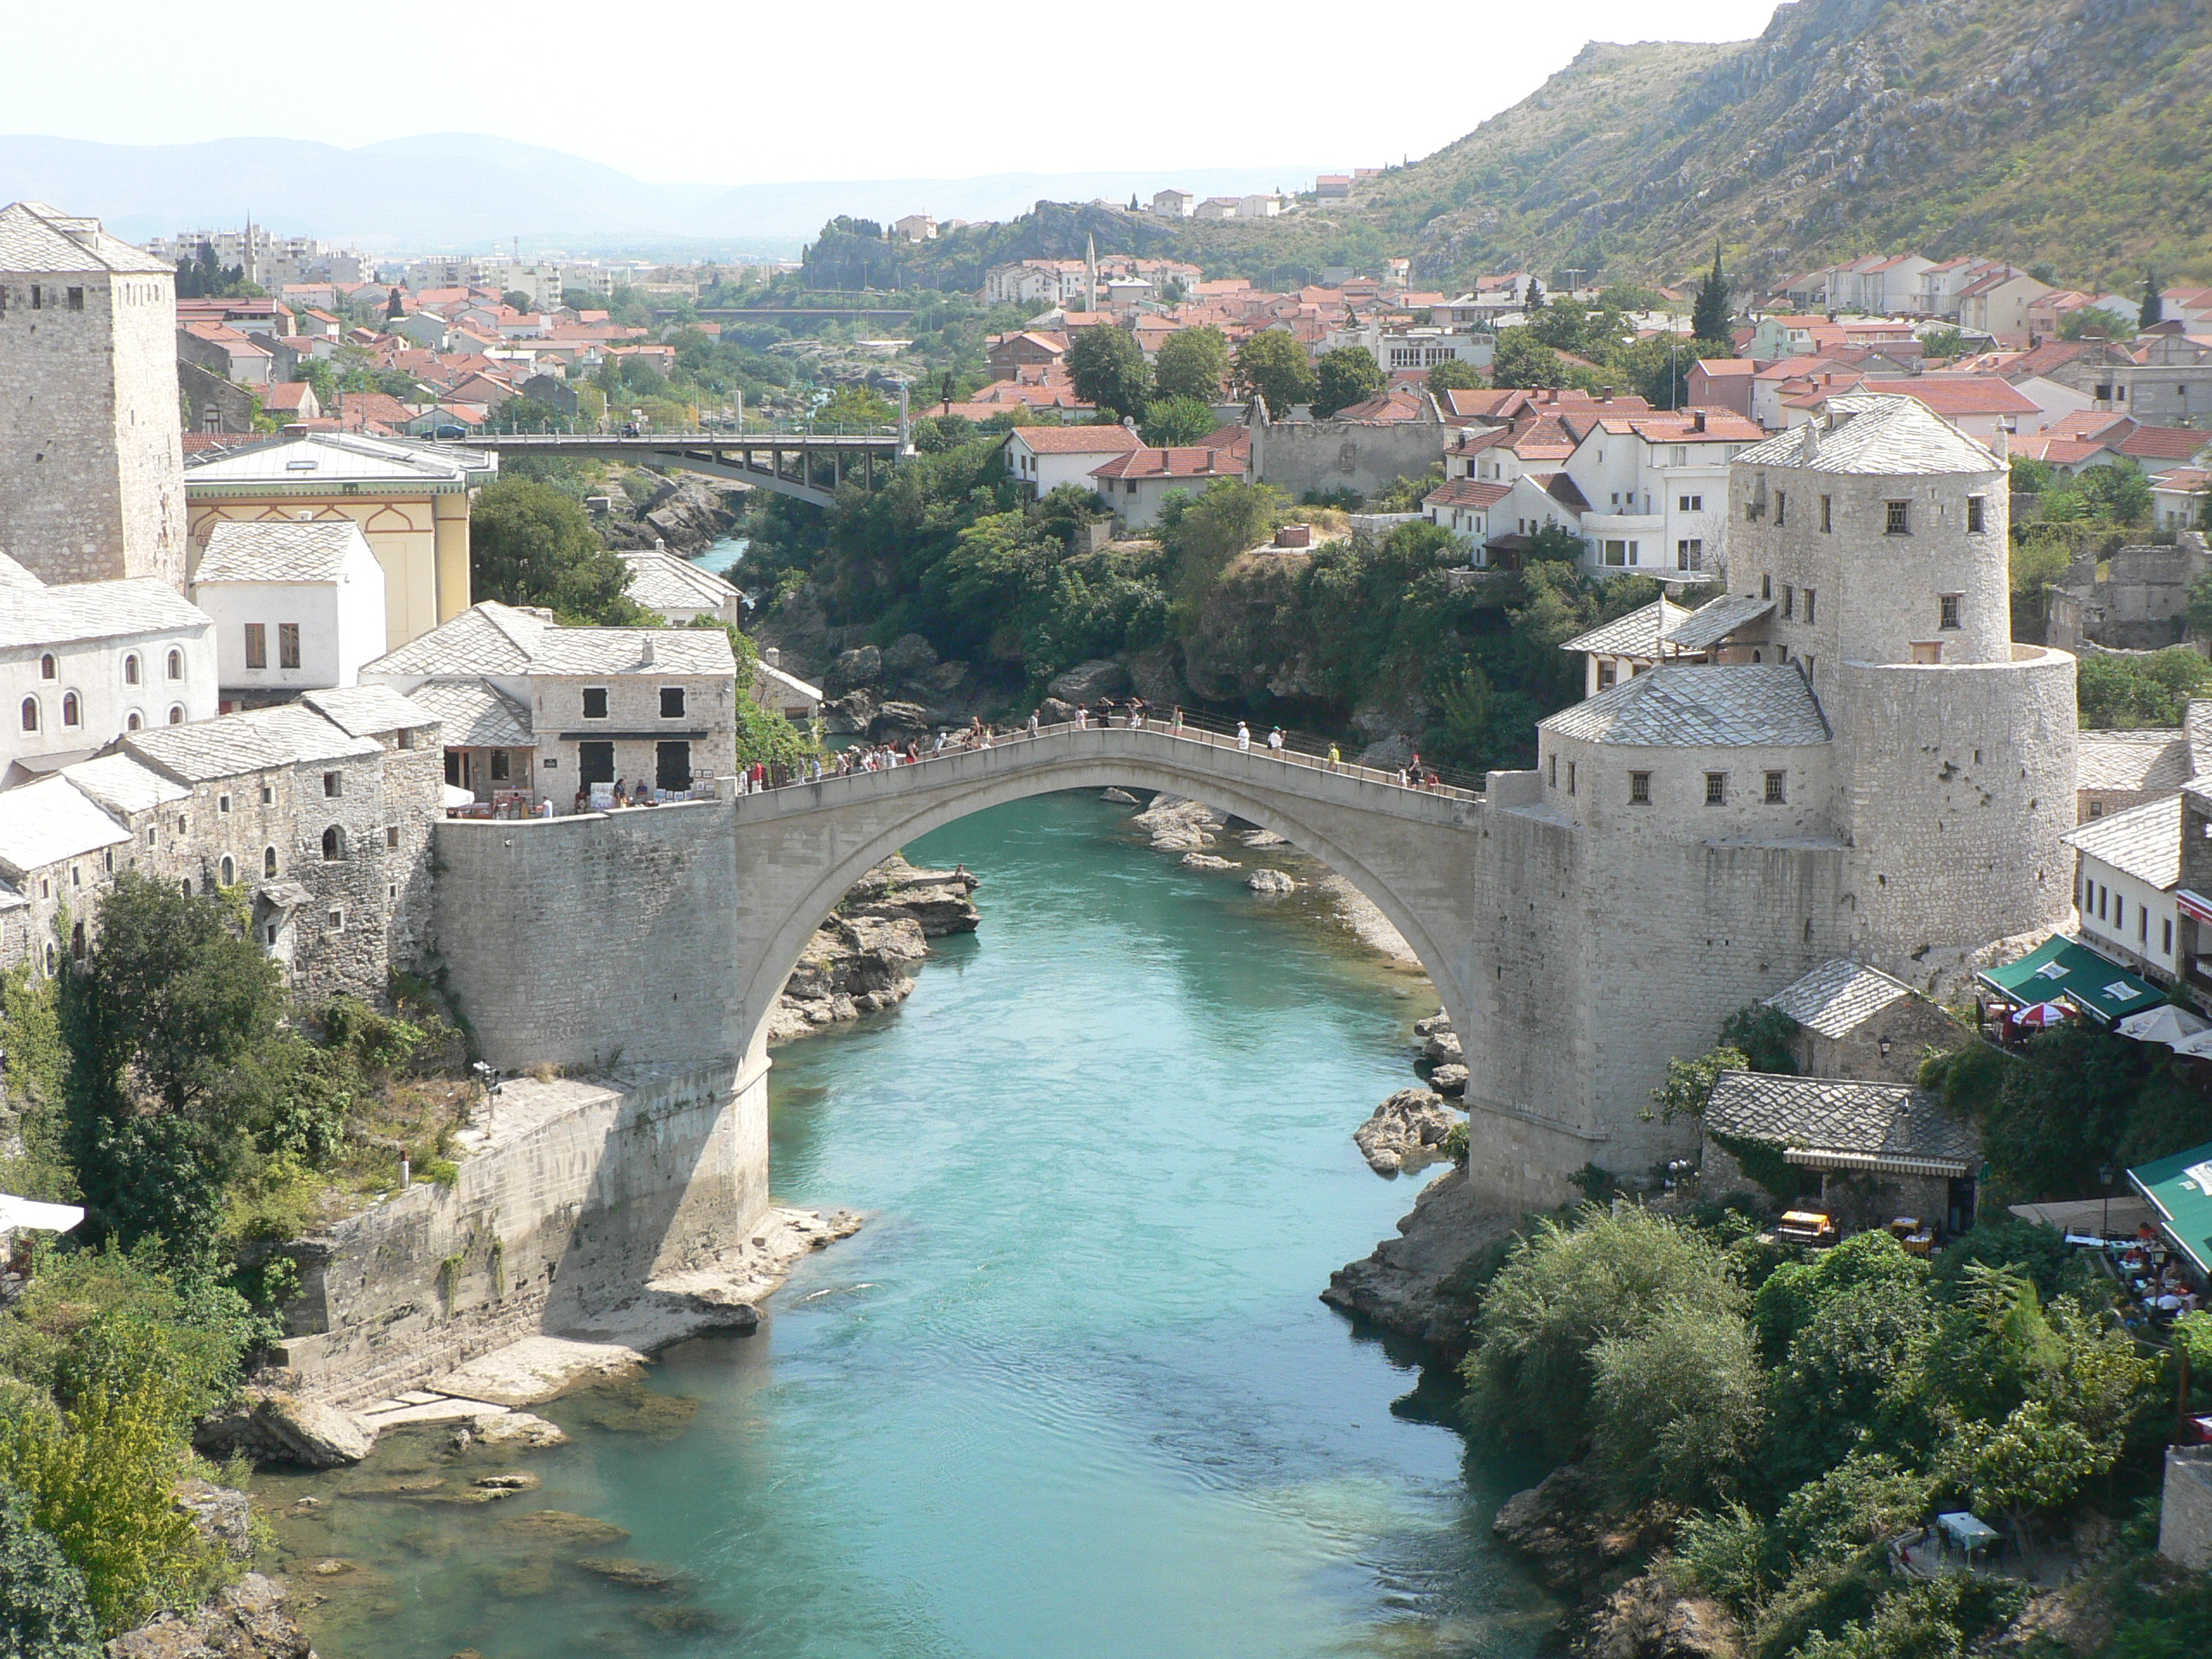 drone for iphone with 46 Spectacular Photos Of Mostar Bridge In Bosnia on Apple 30 Years Of Mac 03 28 2014 together with Blue Giant additionally Apple Park 4k Drone Footage in addition Microsoft Xbox One Skin Red Burst together with Unique Product Designs.